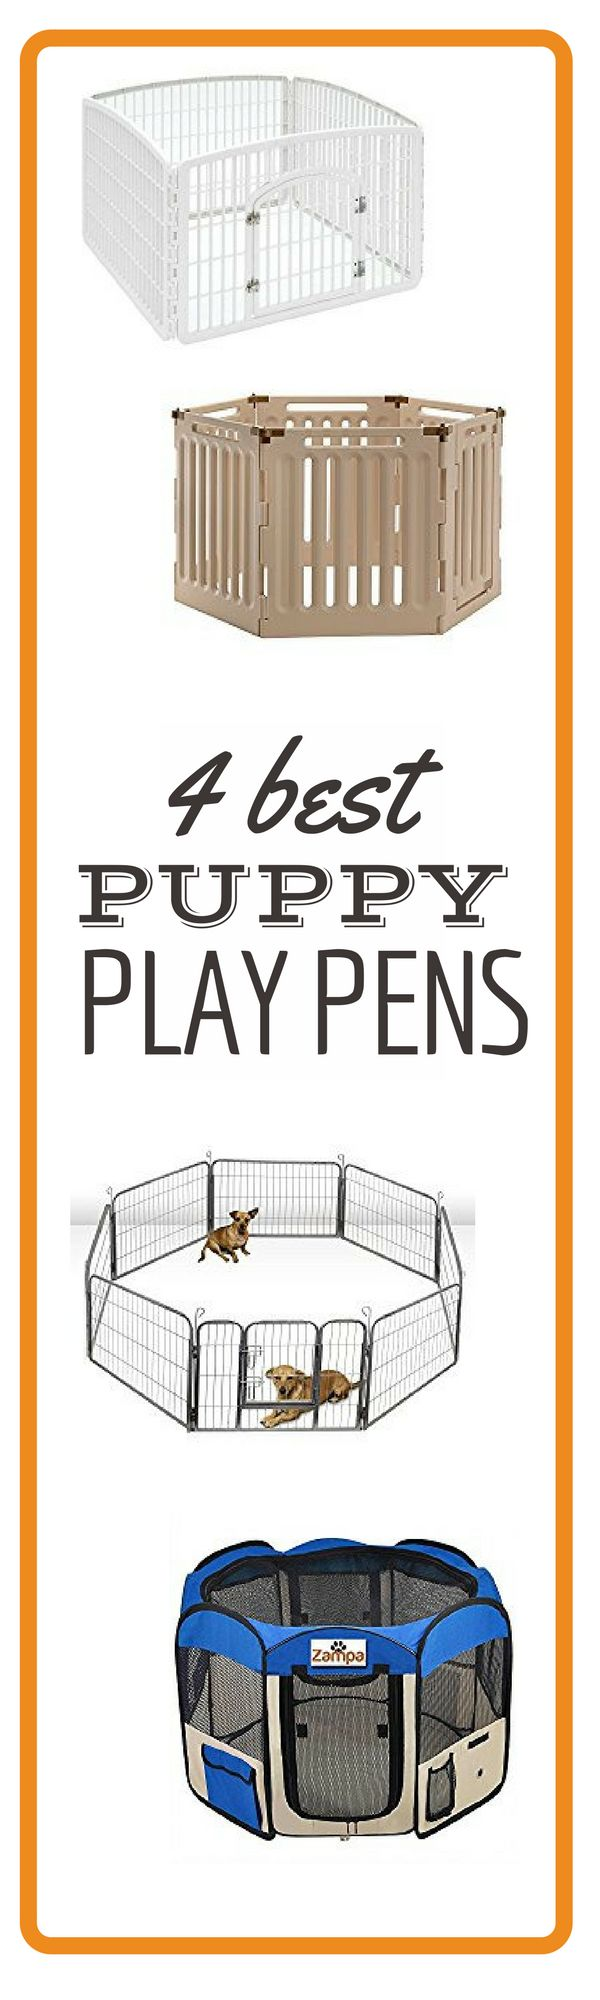 The Top 5 Puppy Playpens                                                                                                                                                                                 More